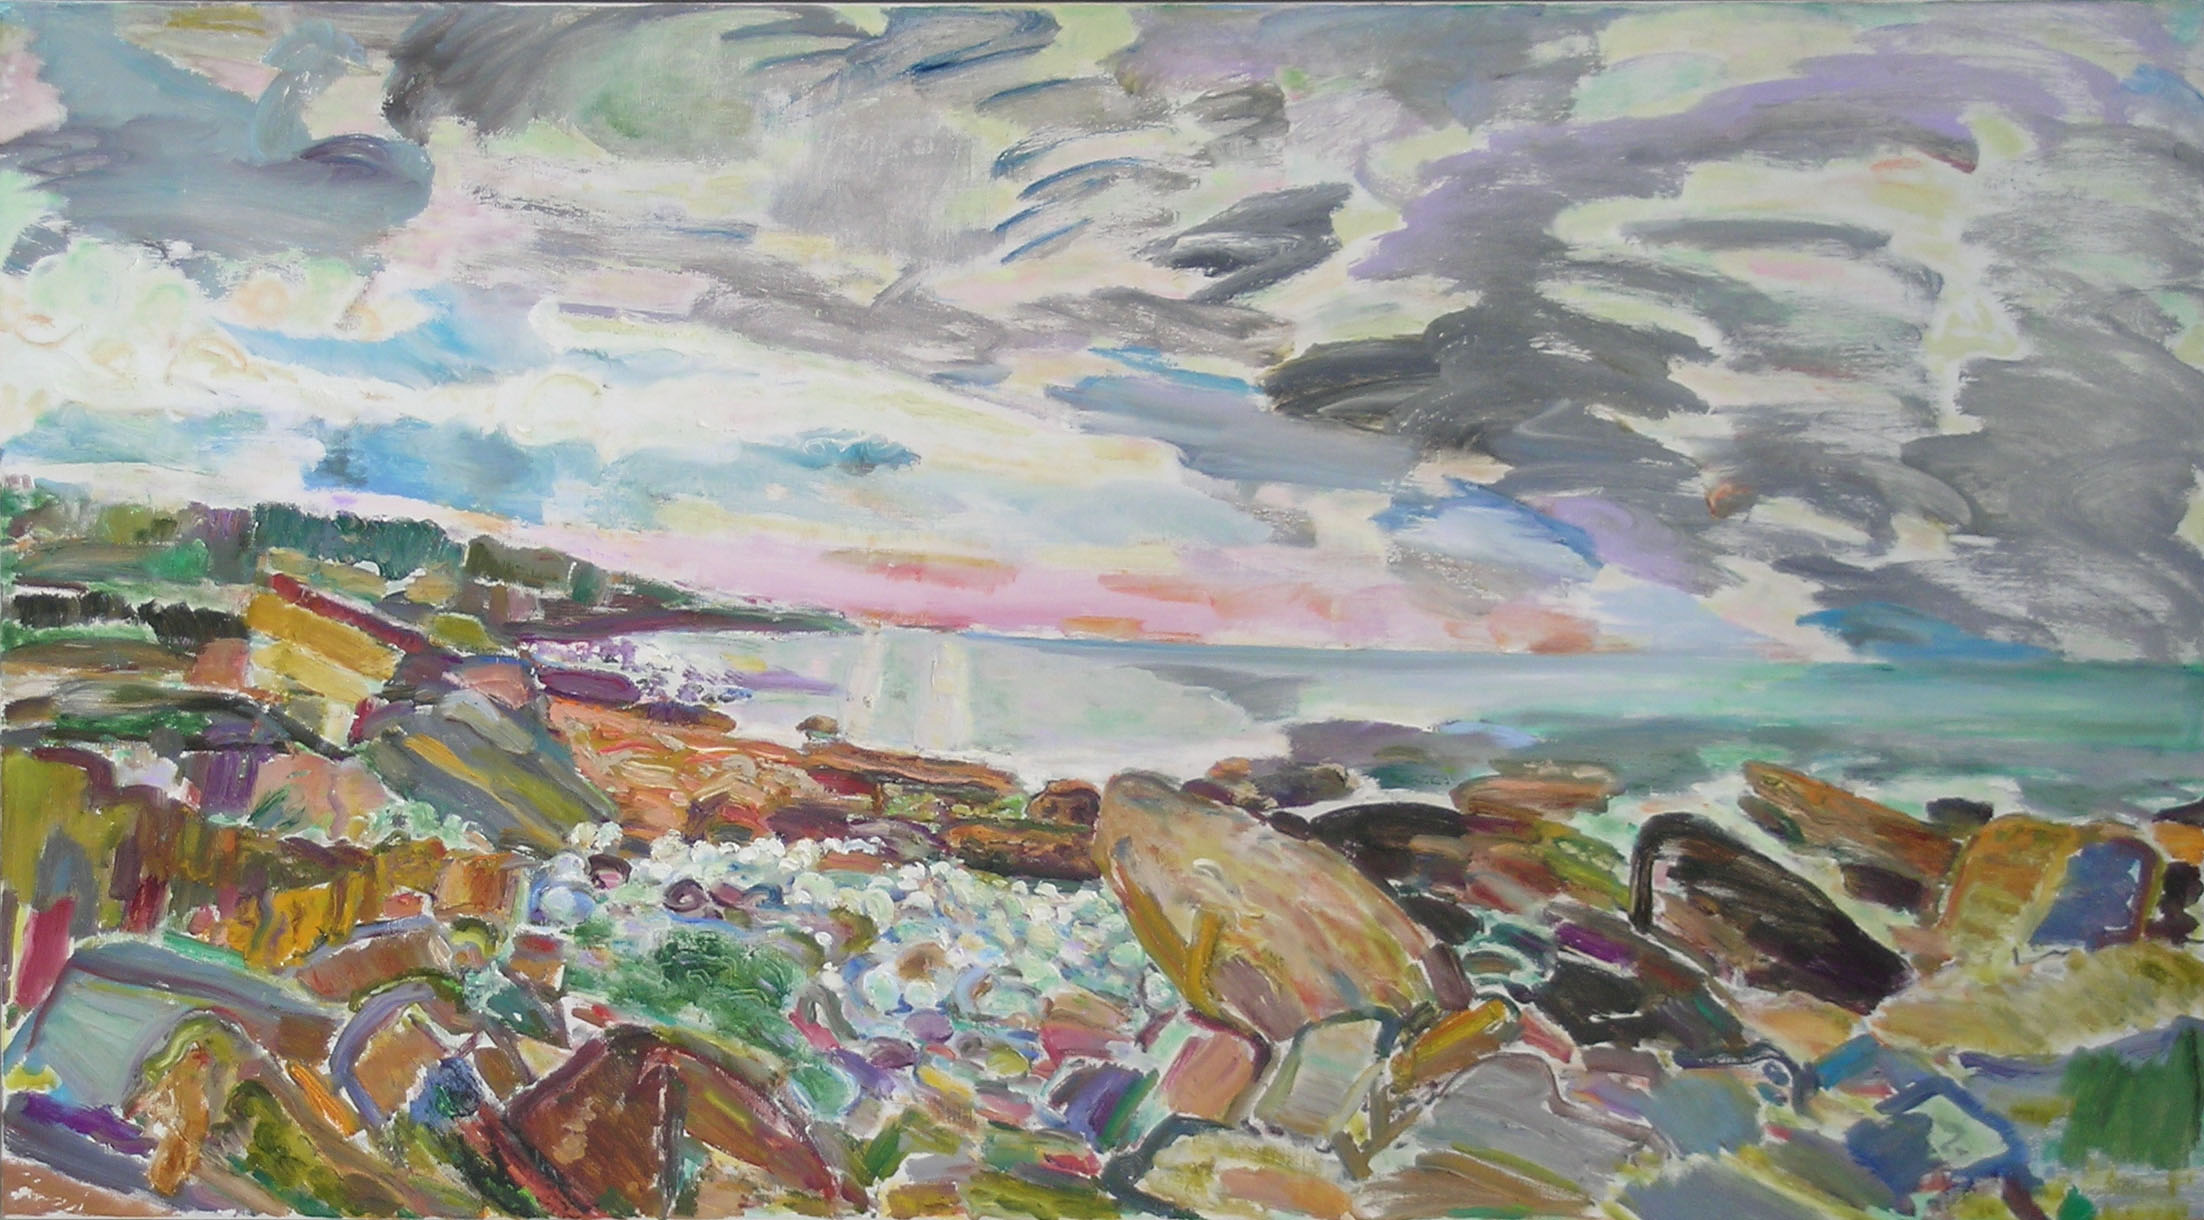 Cathedral Rocks, 2003 - 05 oil on canvas, 30 x 54 inches